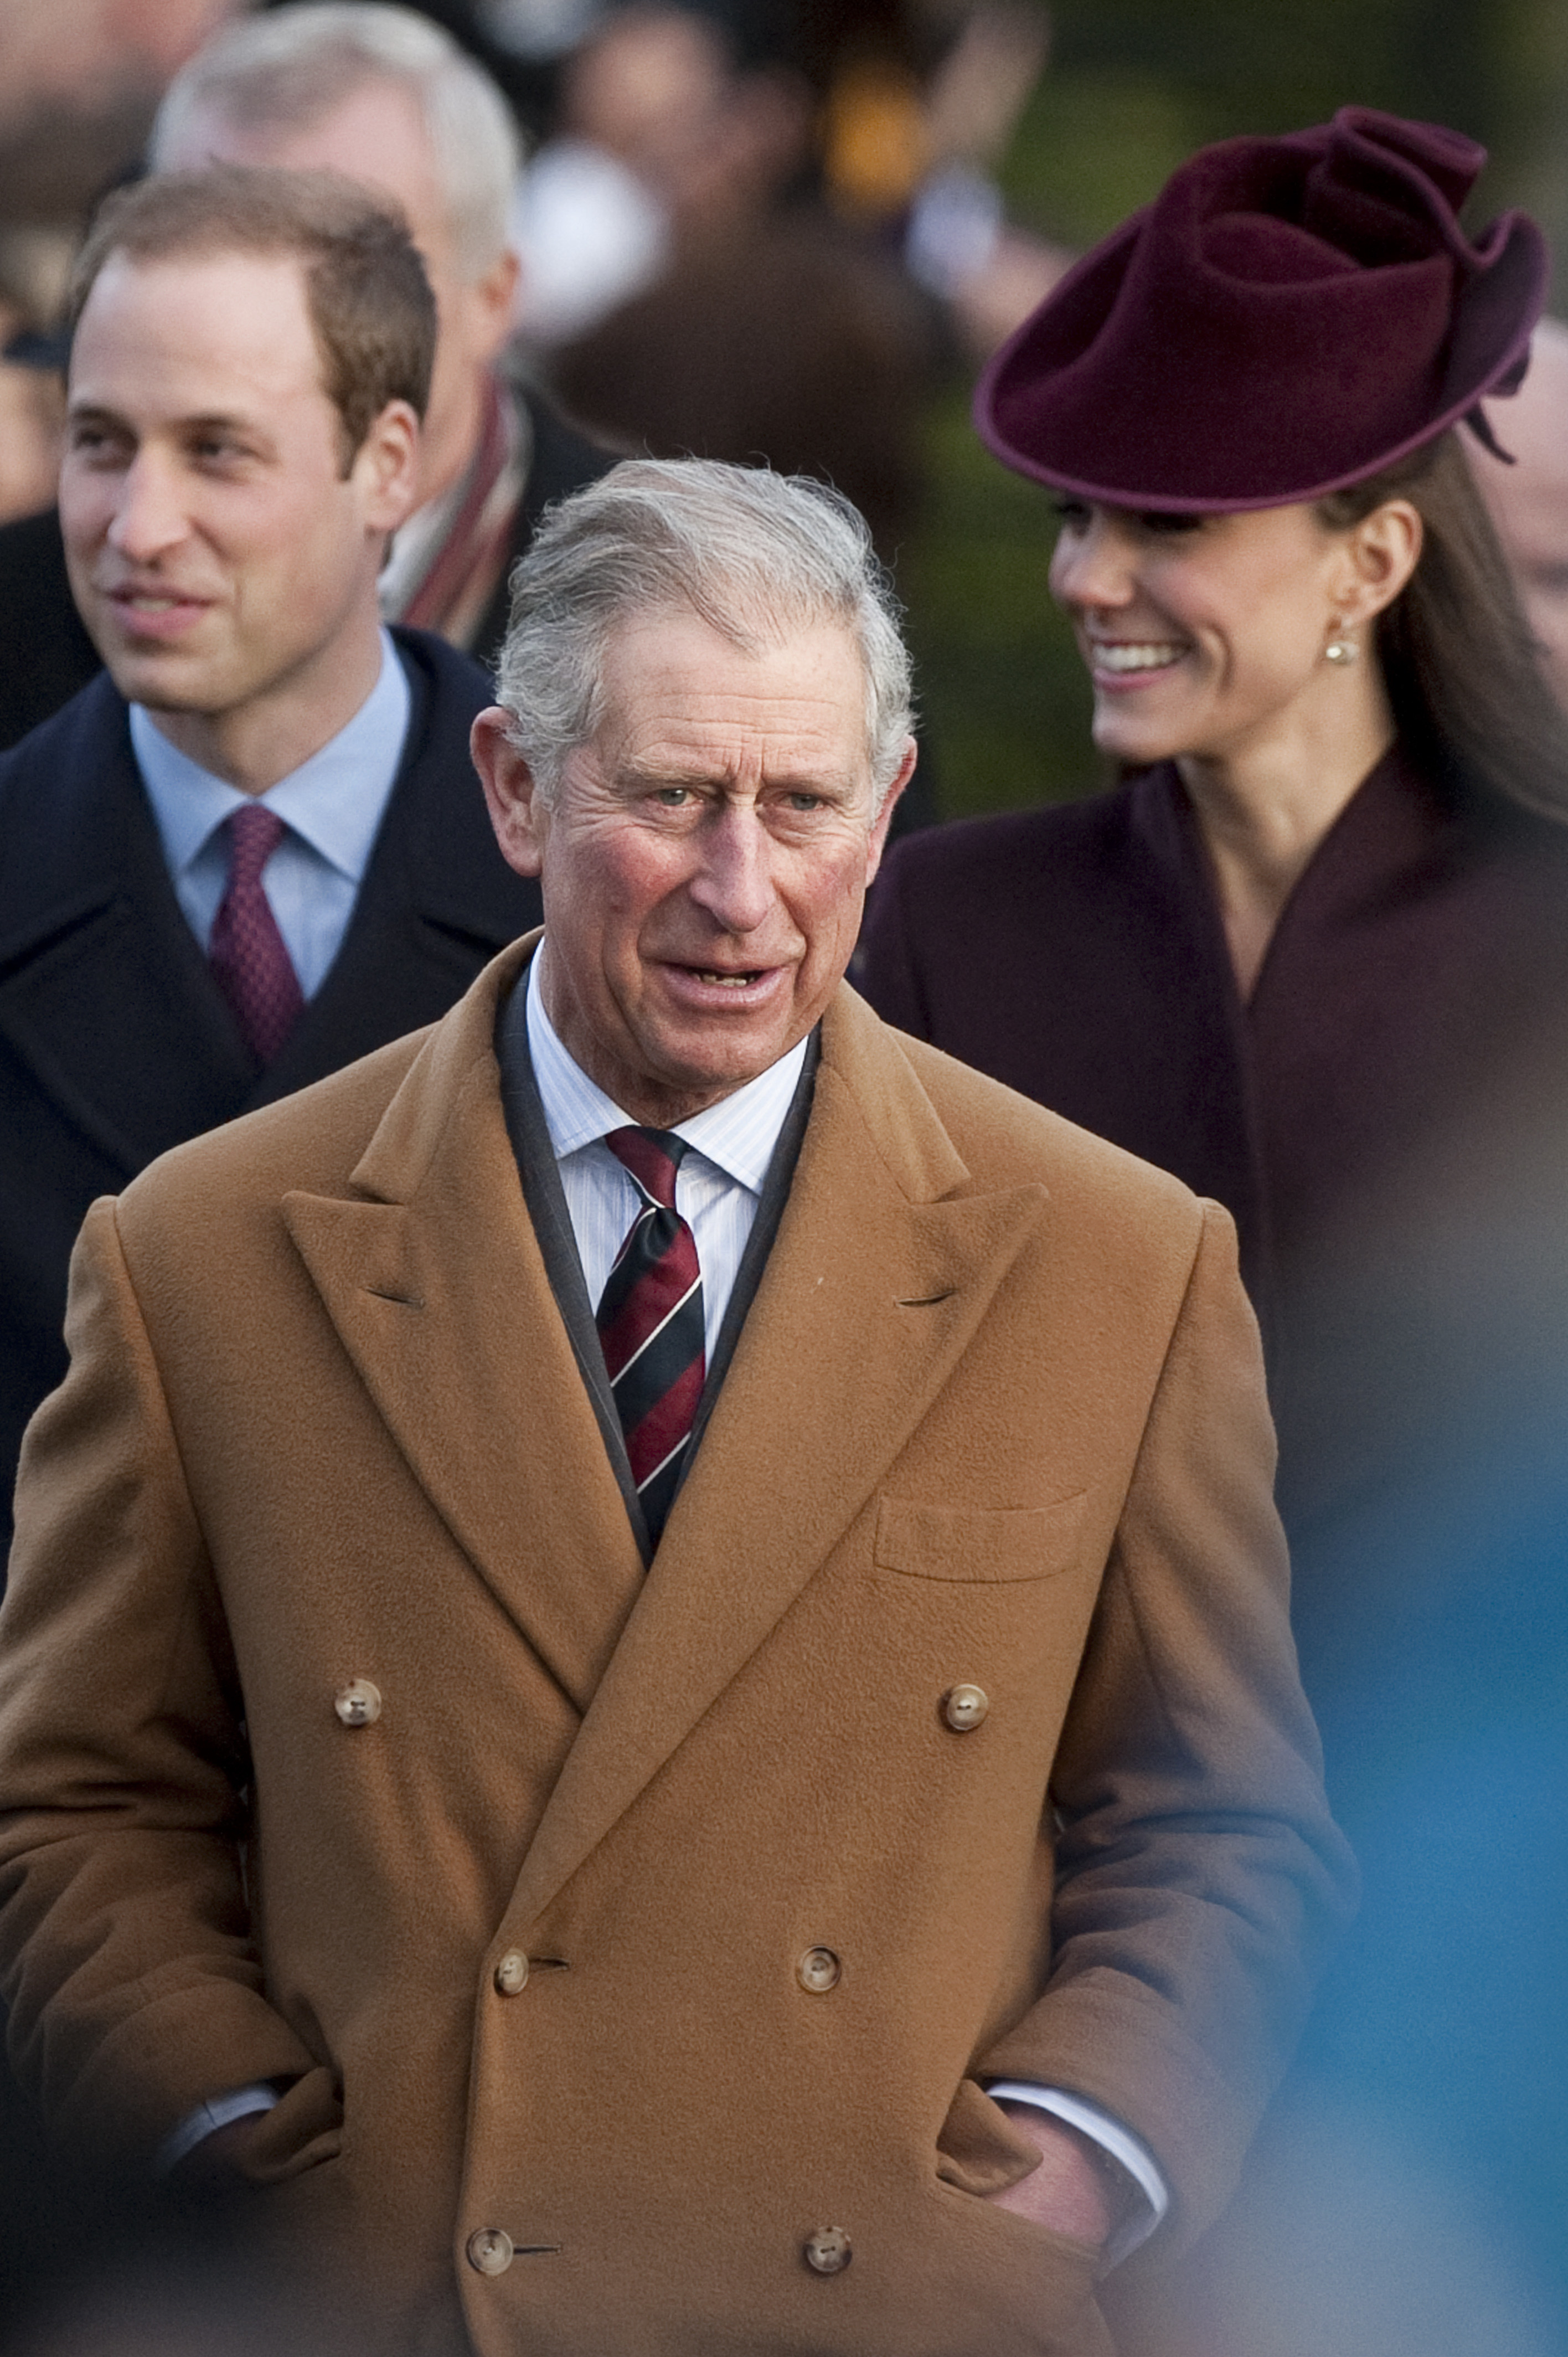 Prince Charles walking with Prince William and Duchess Kate Middleton behind him